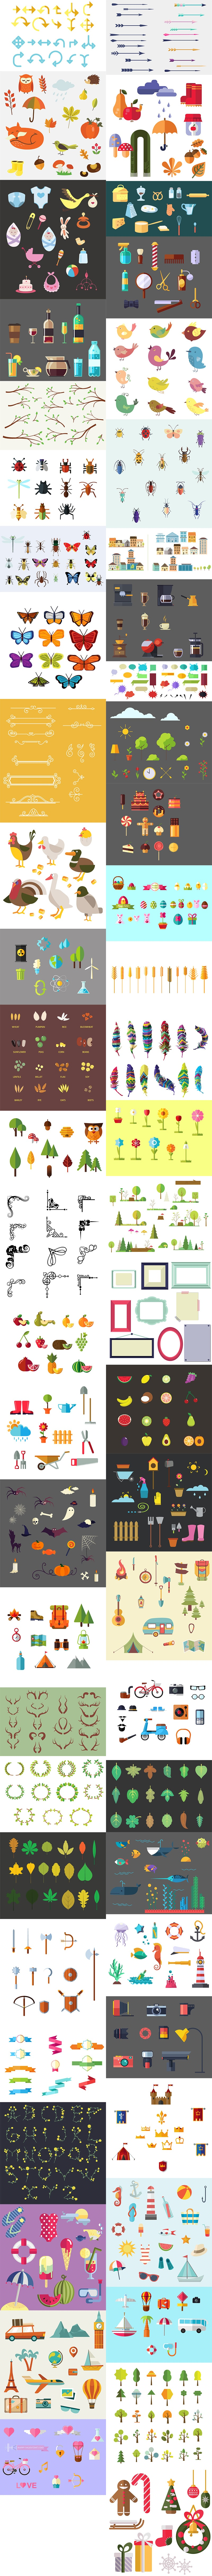 The Vector Clip Art Mega Pack with 950+ Elements